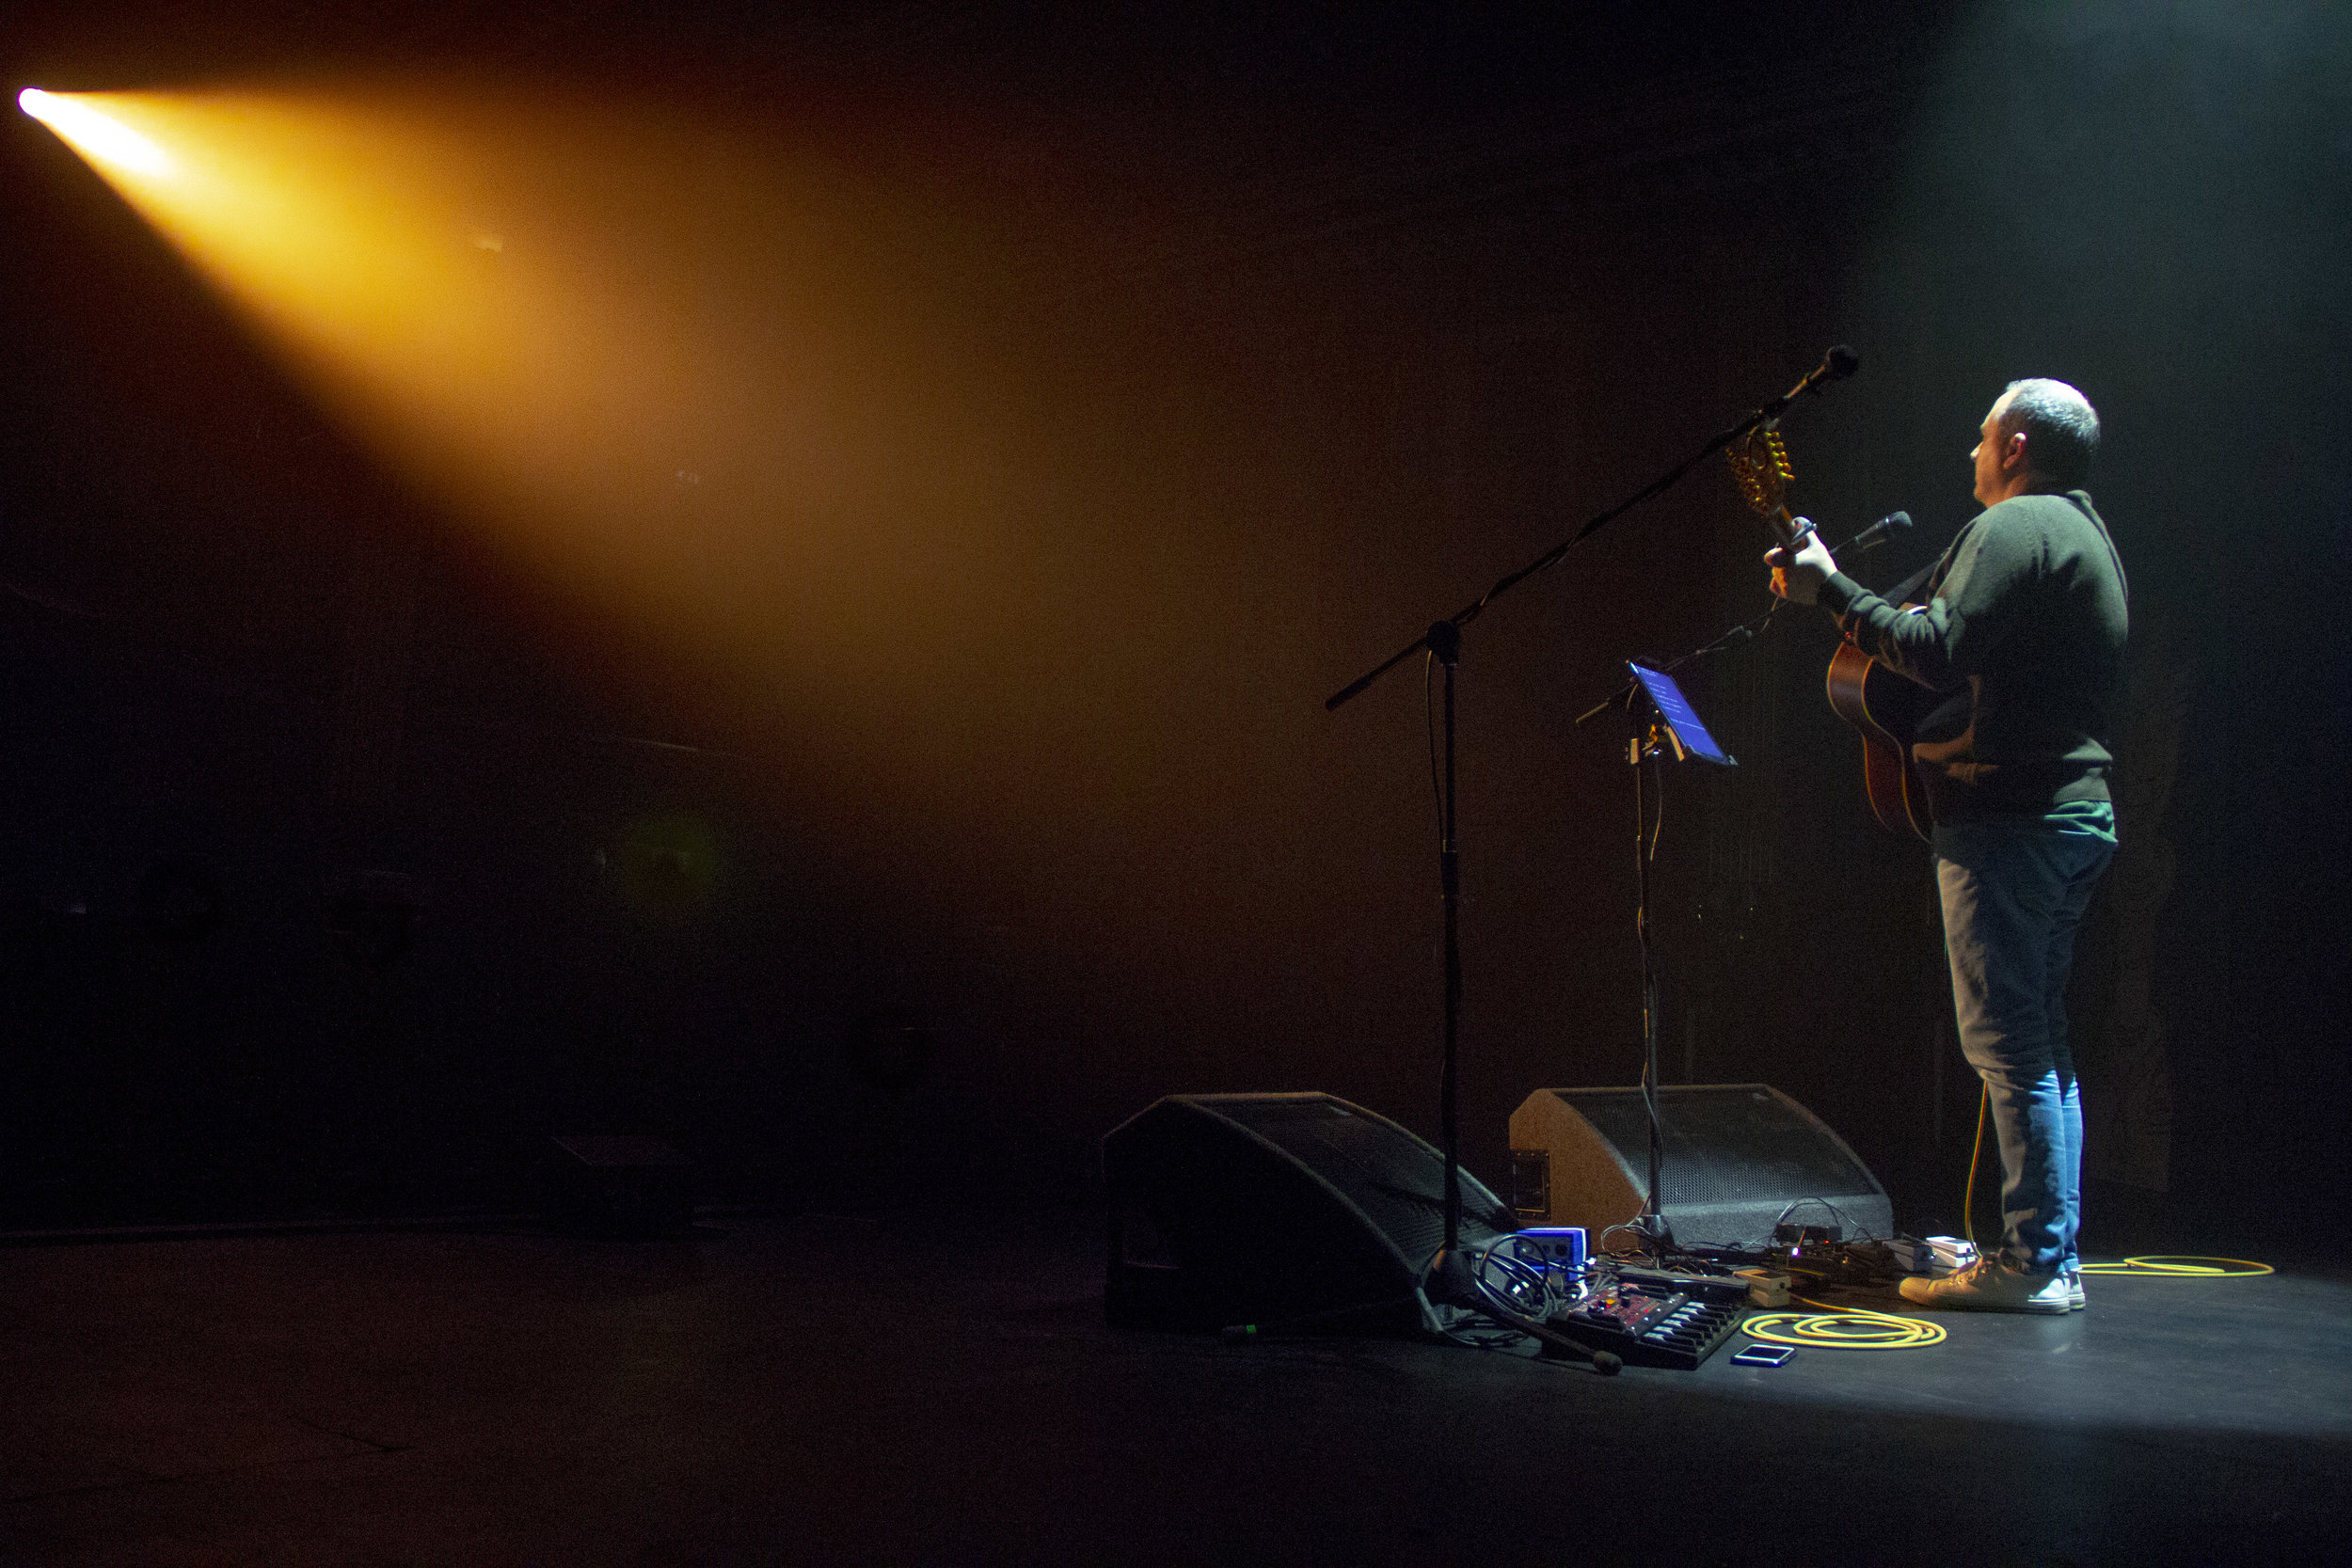 something-about-simon-live-show-3.jpg